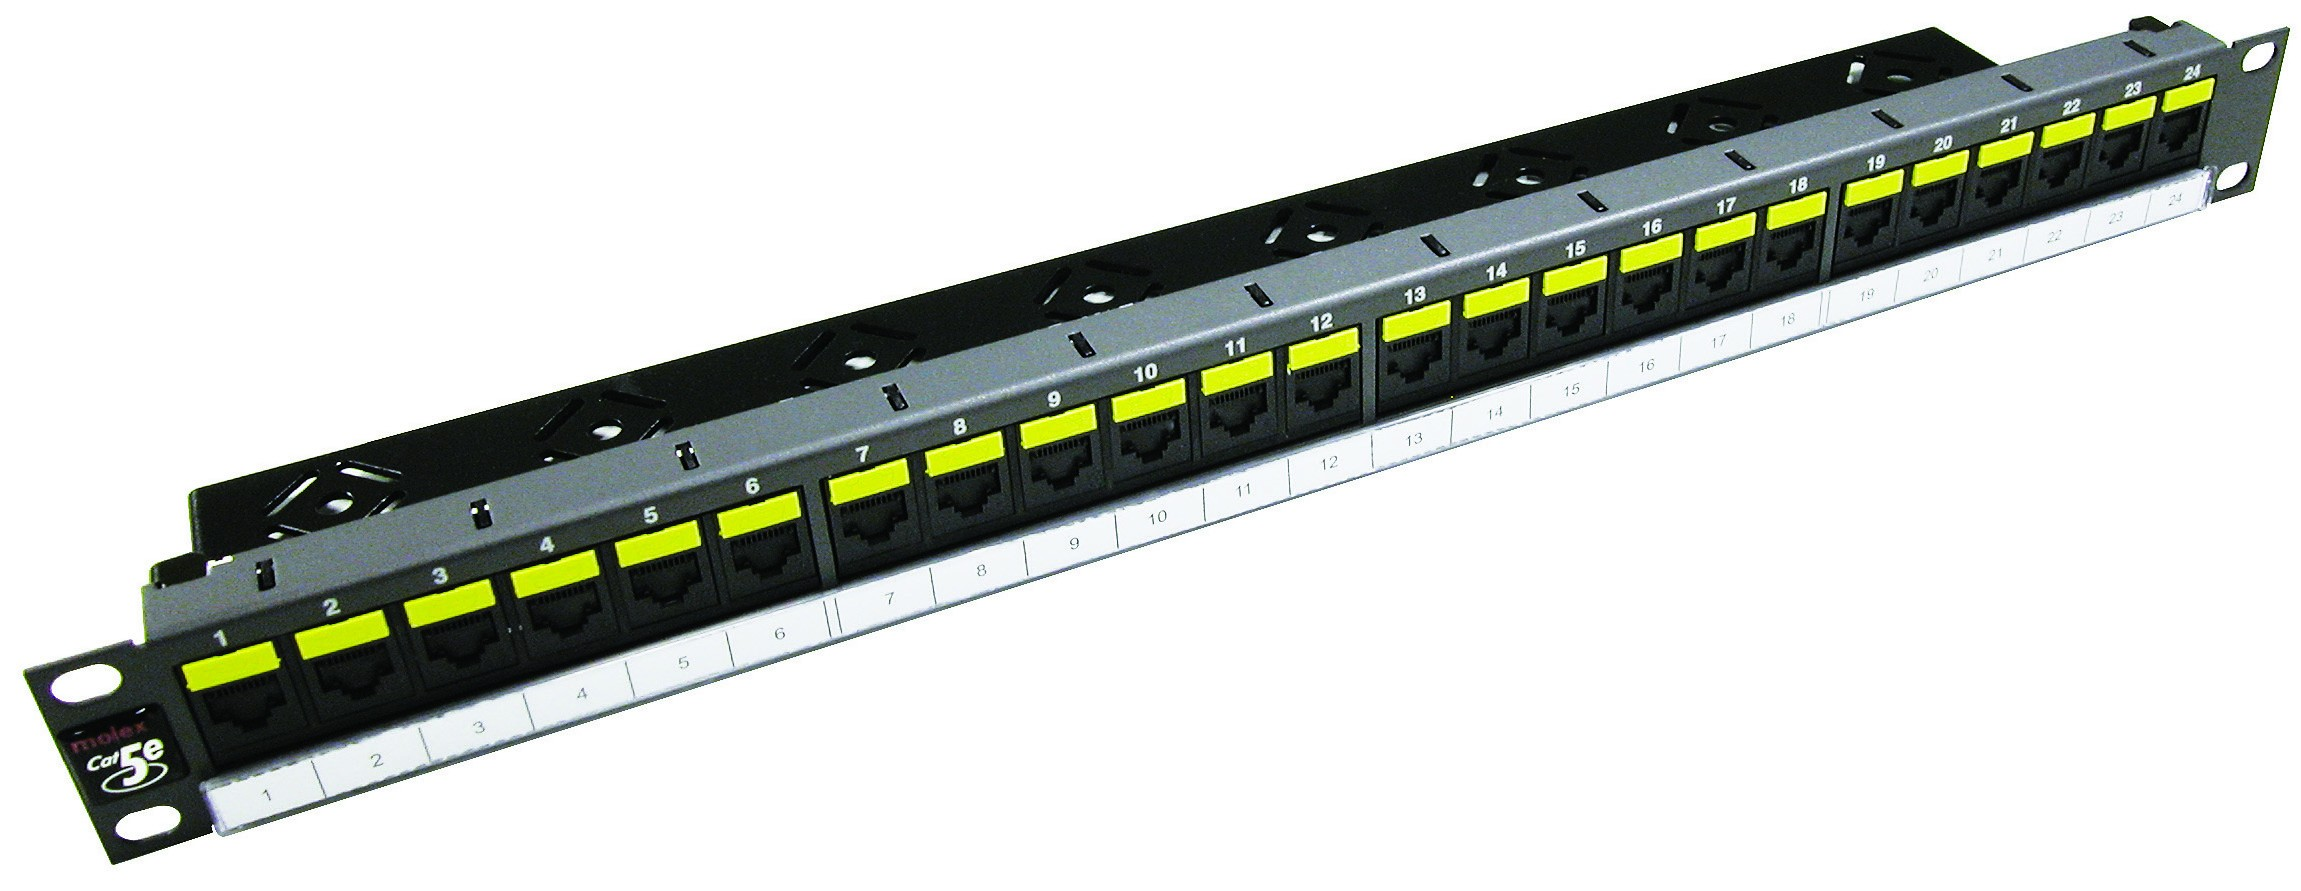 Patch panel PowerCat 1U, 24xRJ45, DataGate+, UTP kat.5E, 568A/B